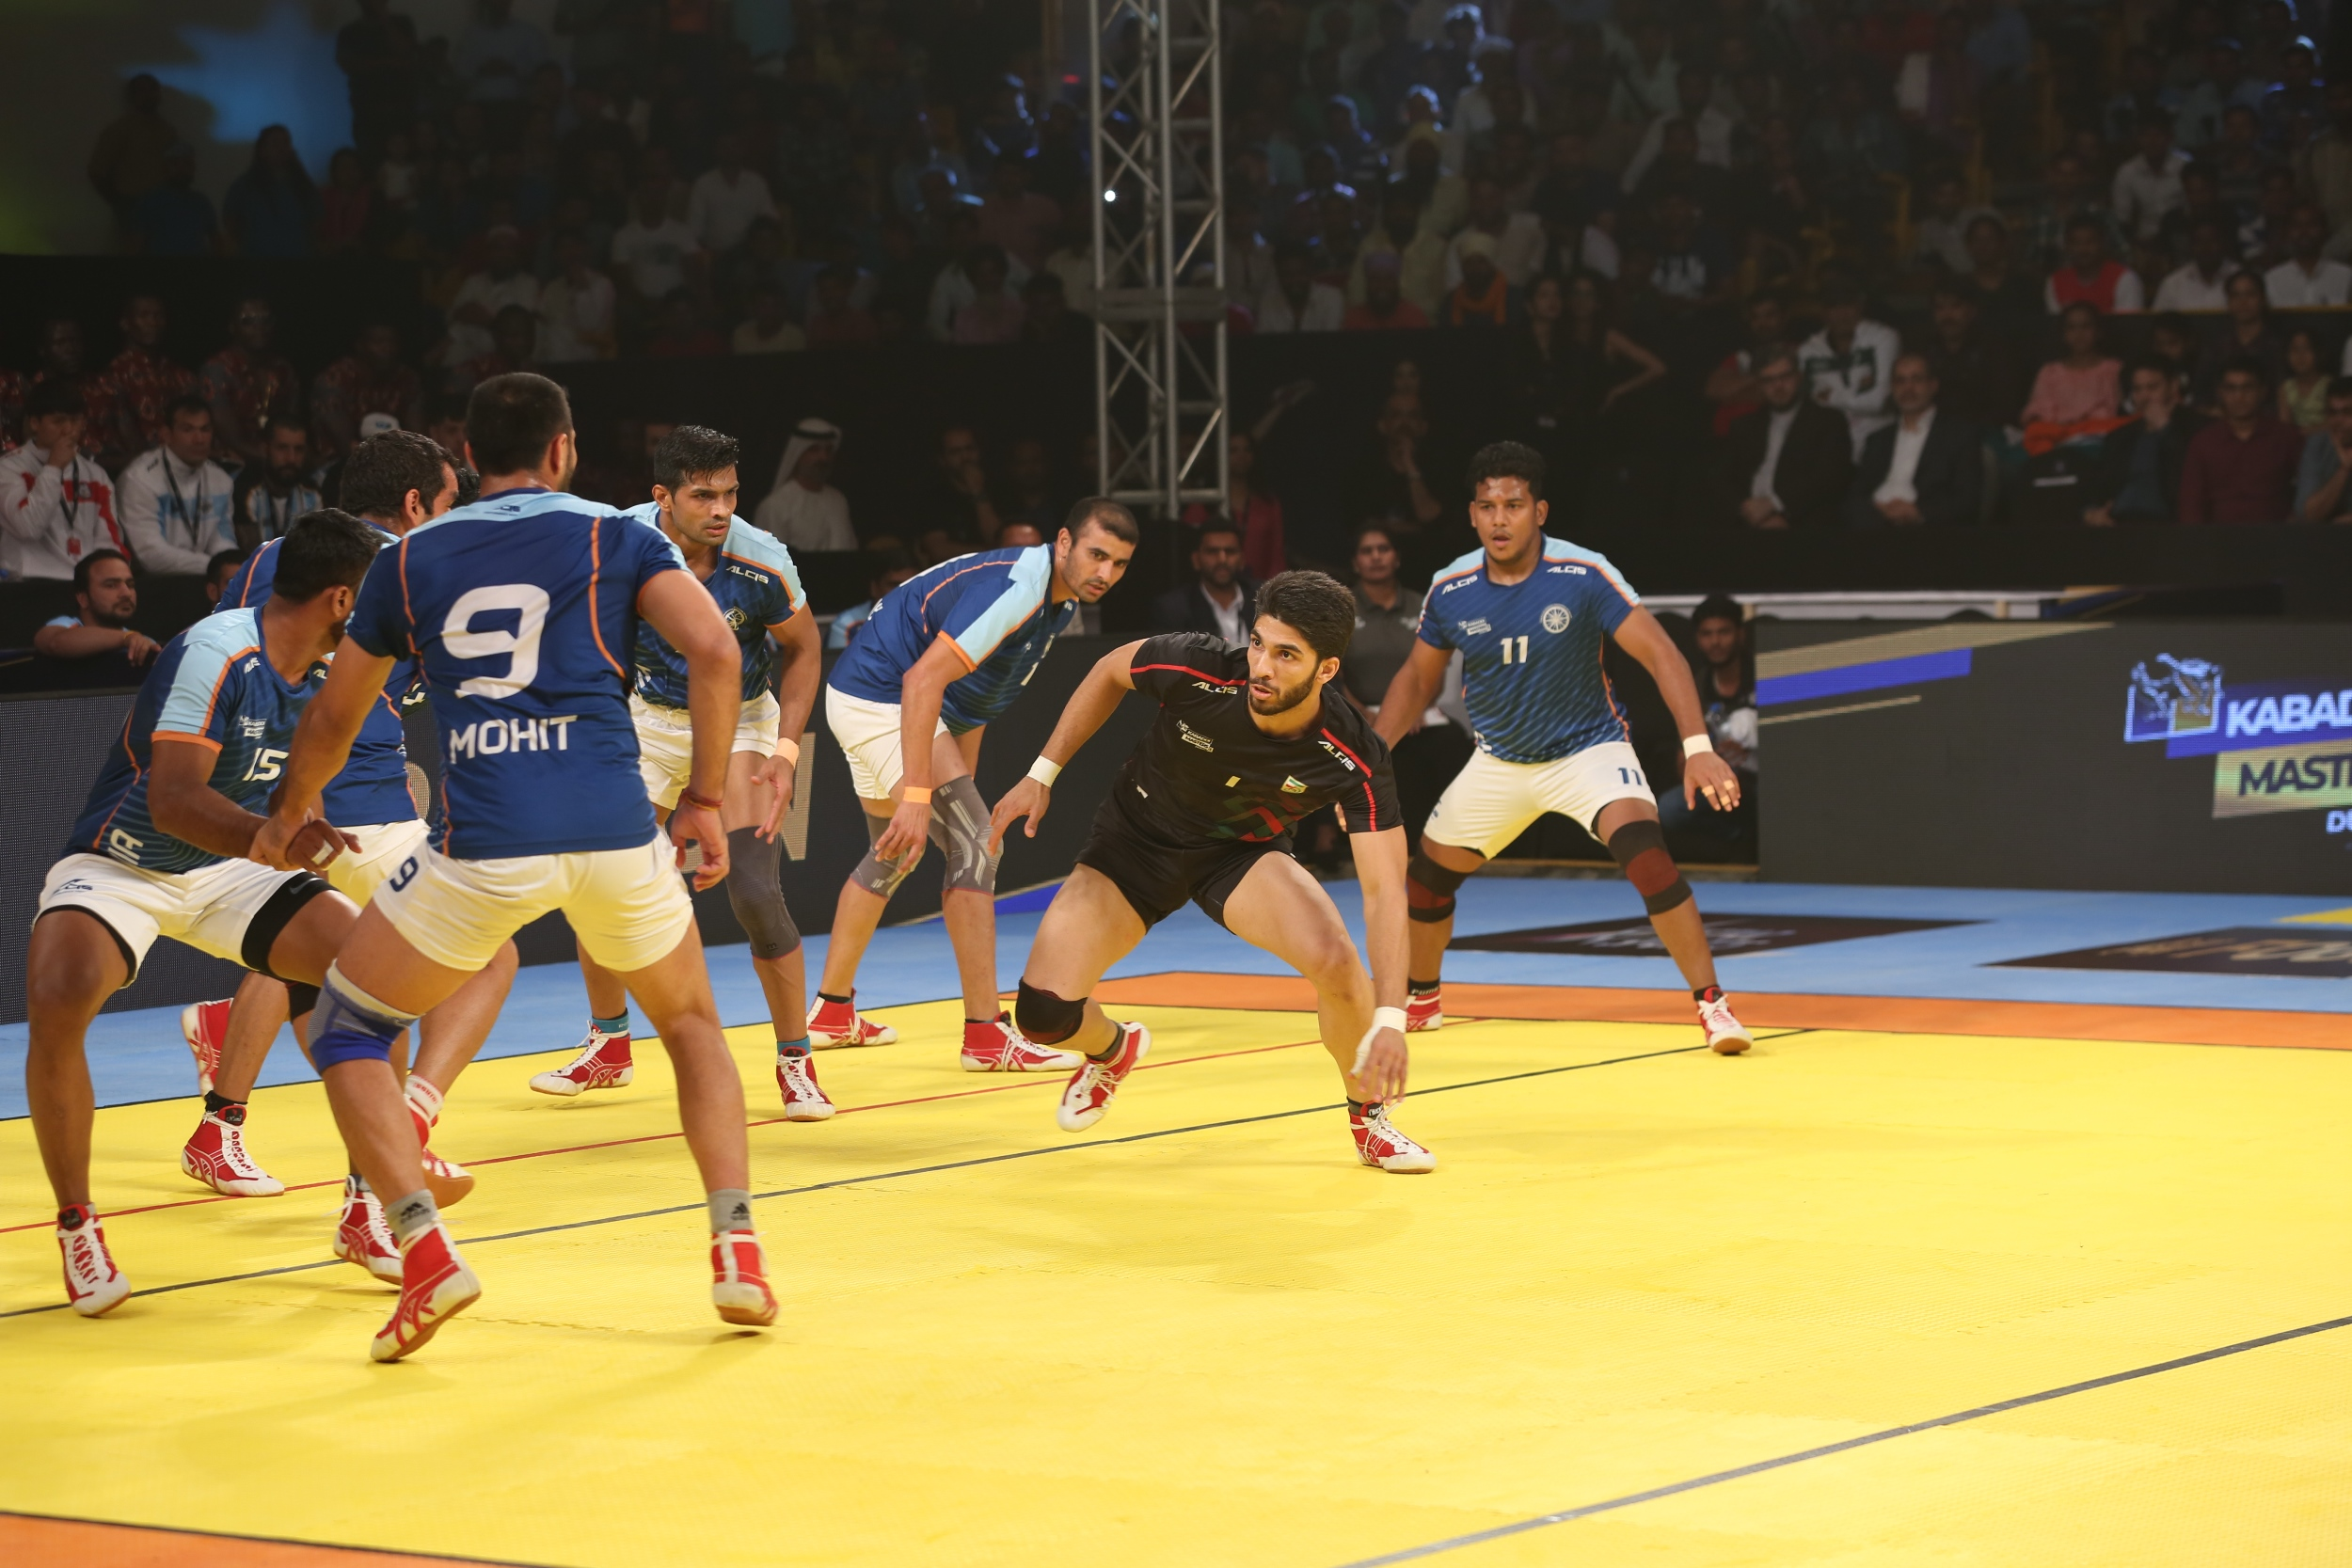 India Crowned Champions at Kabaddi Masters, Beat Iran 44-26.